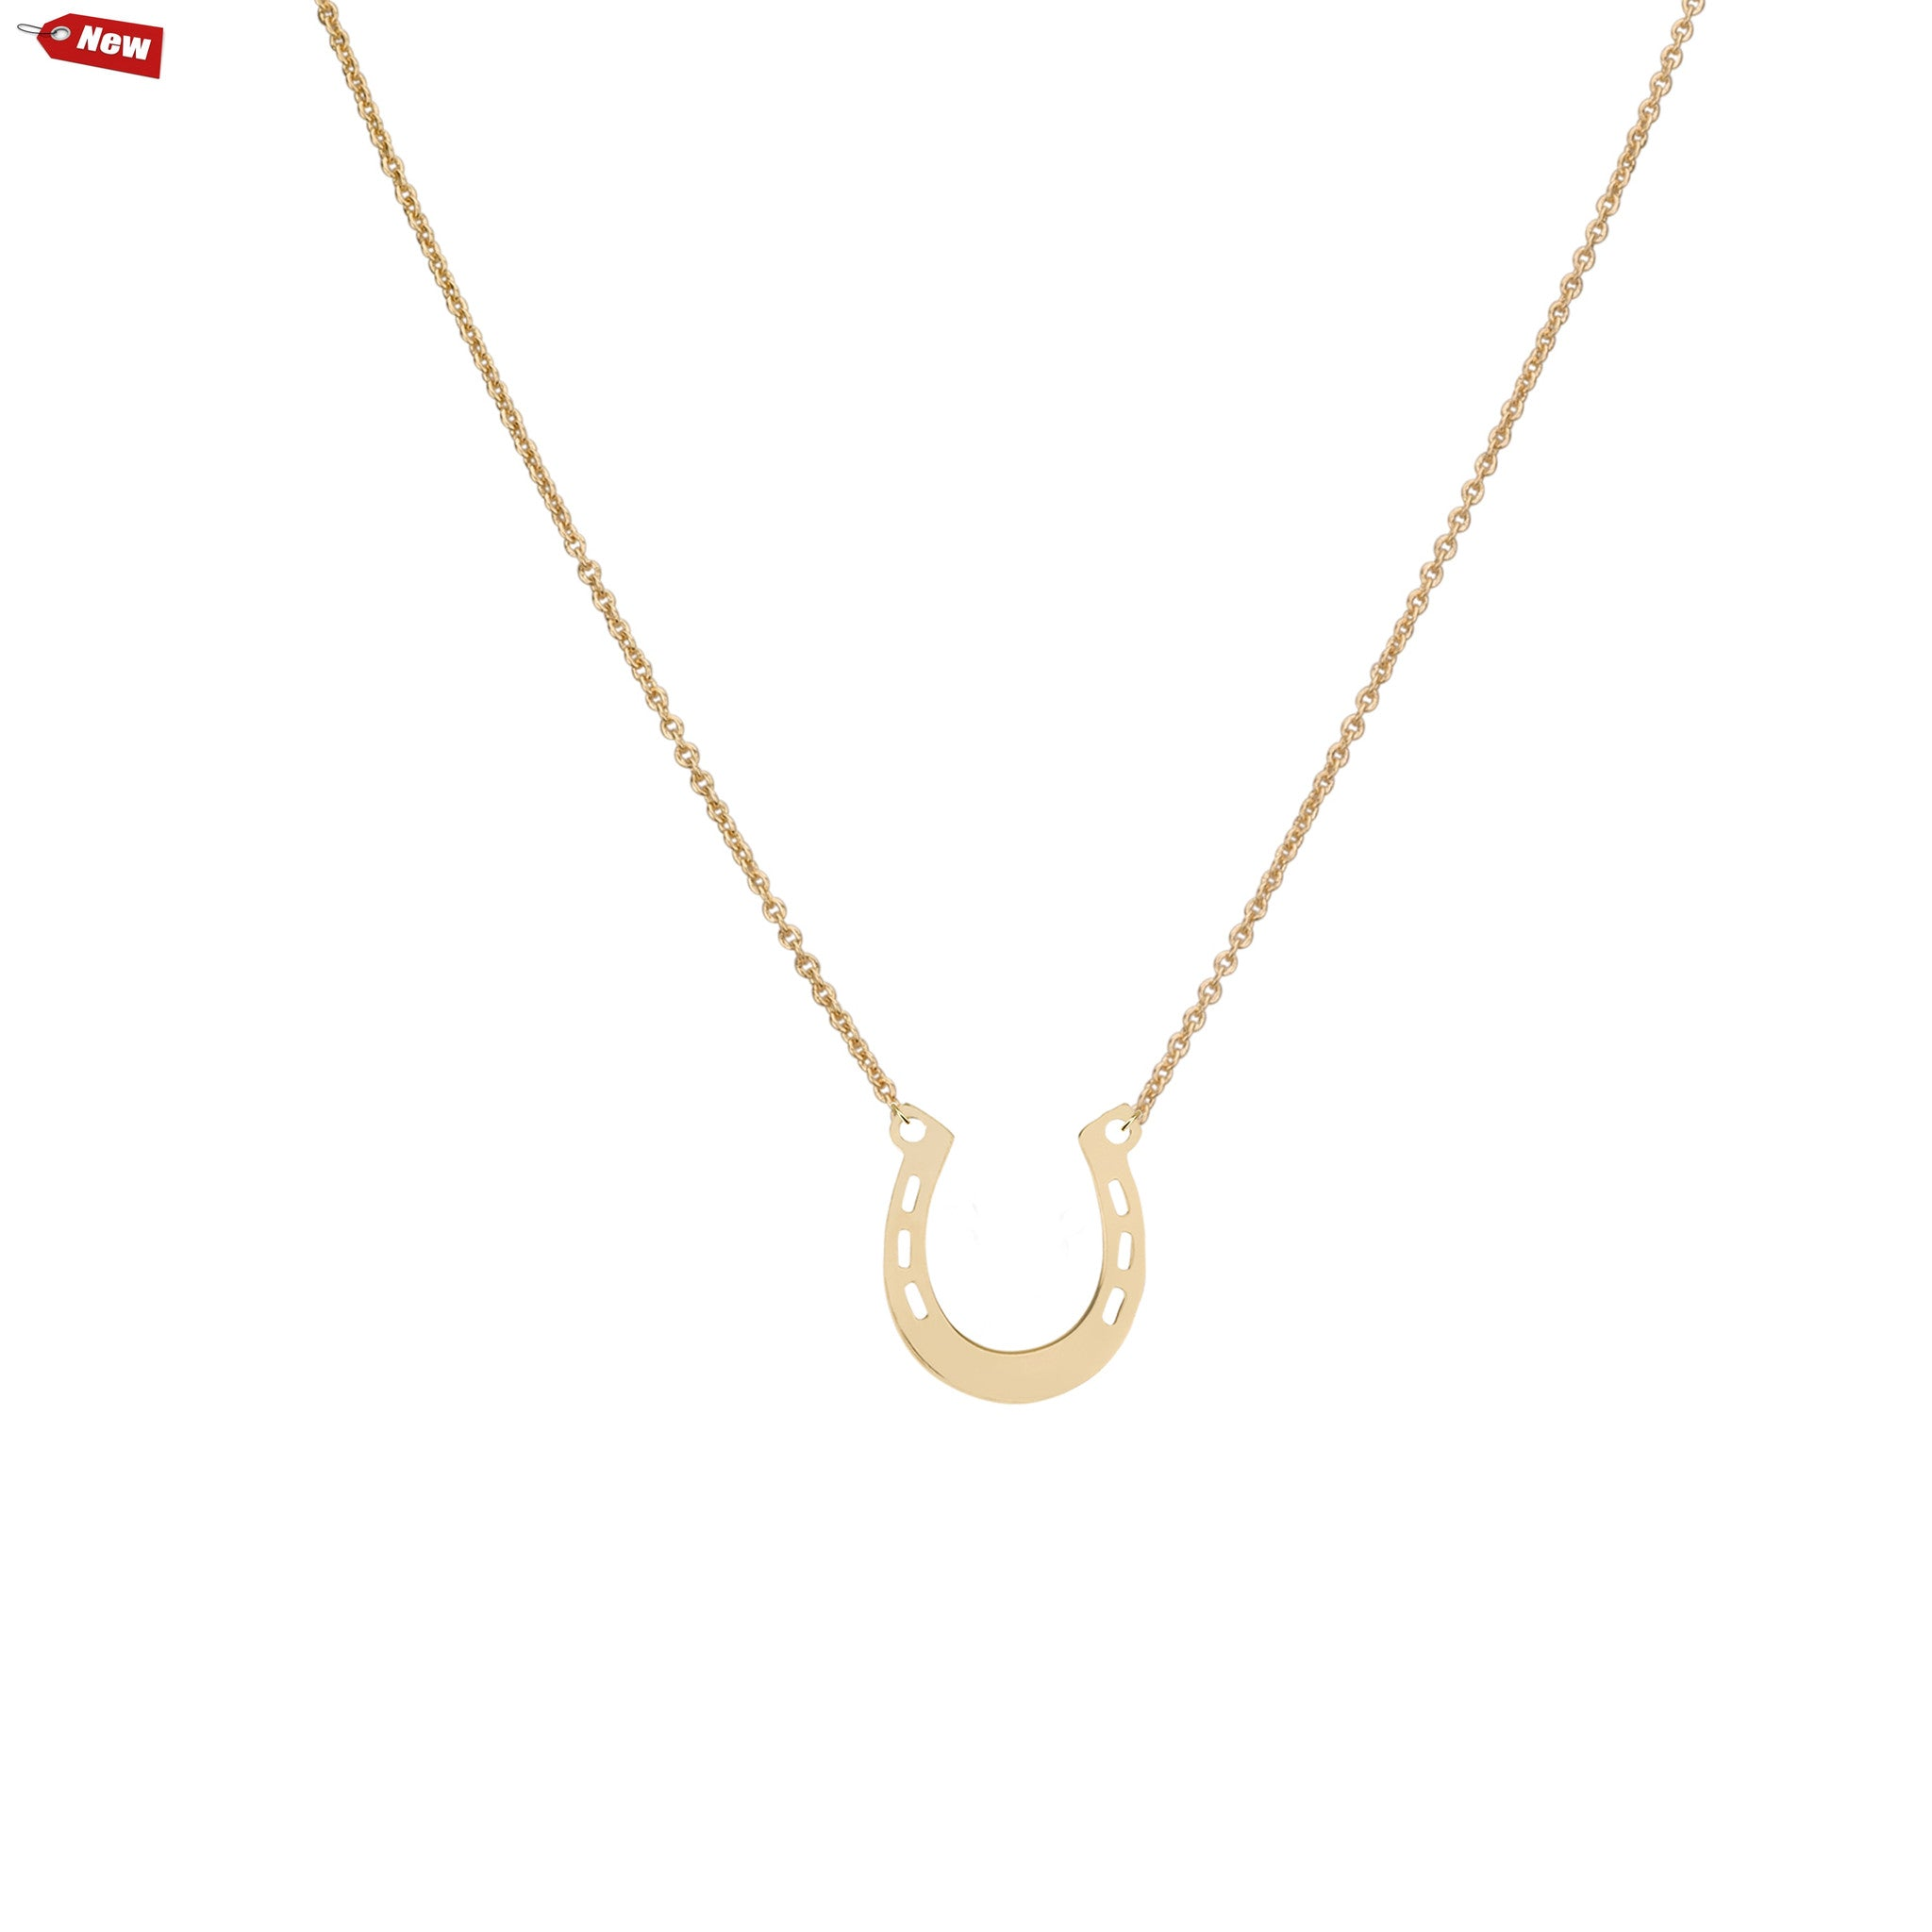 shop by cubic jewelry cz tangerine horseshoe shoe pendant necklace zirconia rg horse products